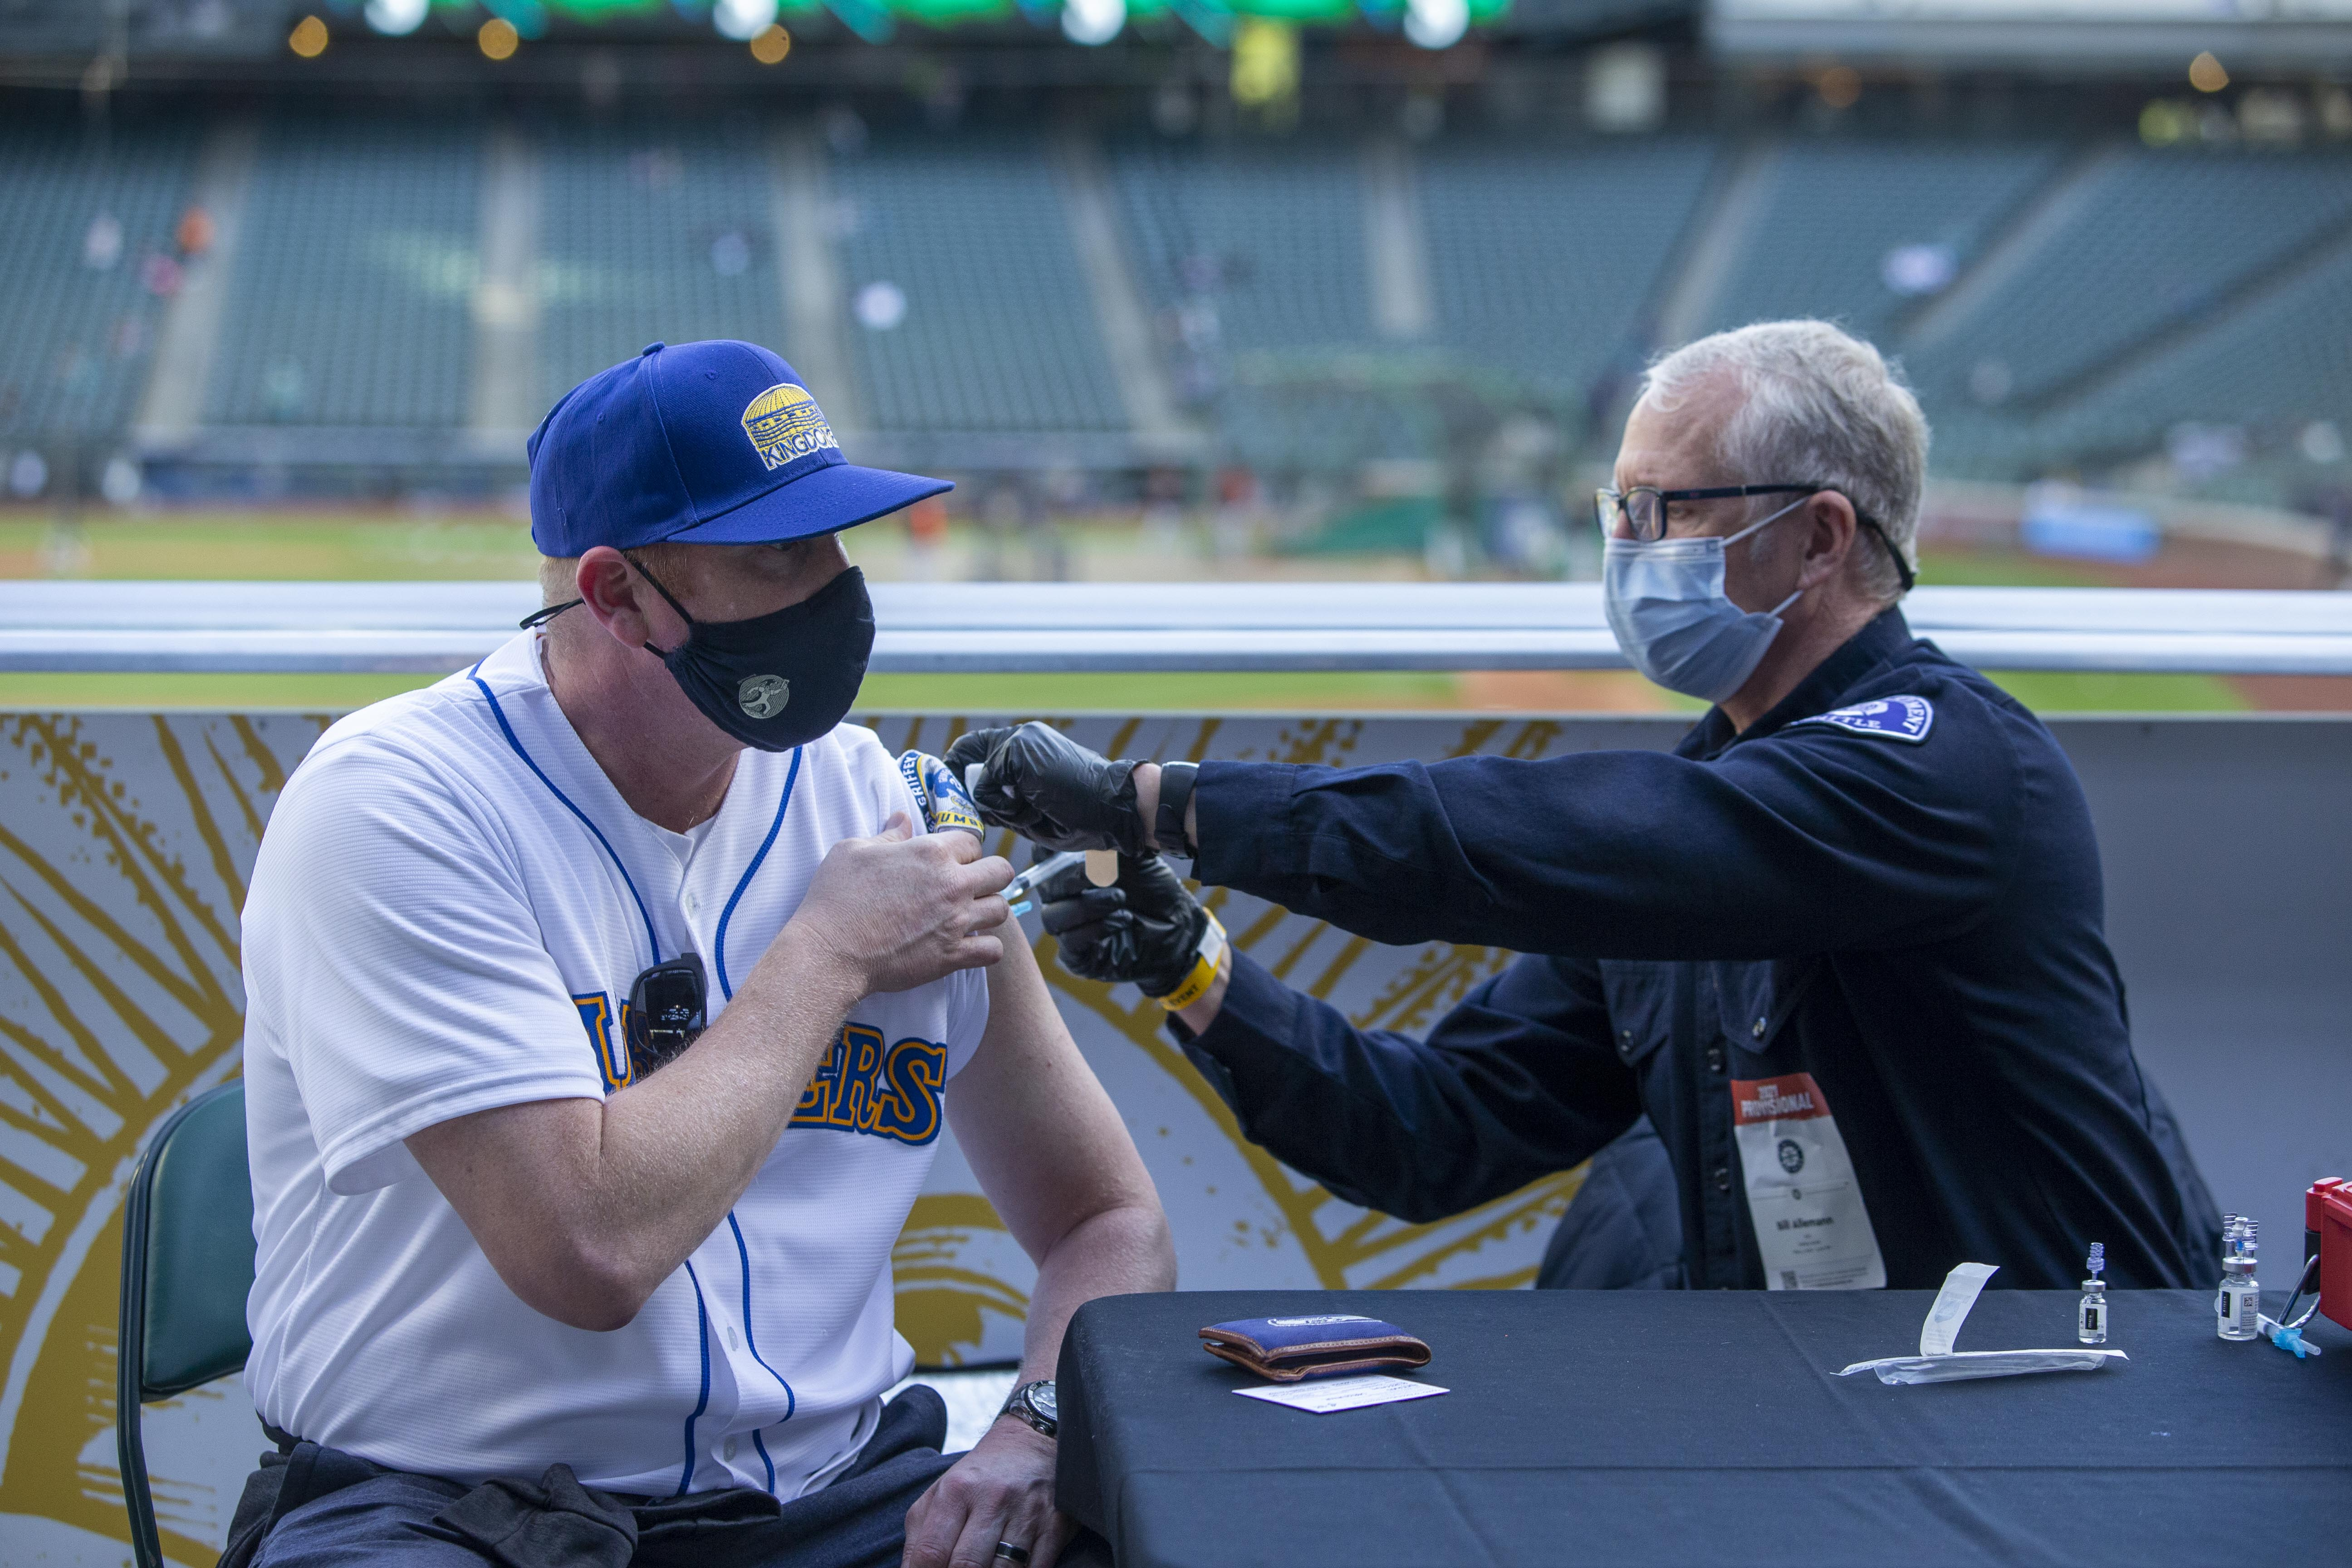 May 4, 2021; Seattle, Washington, USA; Seattle Fire Department EMT Bill Allemann gives Chris Hoffman, of Kent, Washington a Johnson & Johnson Covid-19 vaccine during batting practice before a game between the Seattle Mariners and Baltimore Orioles at T-Mobile Park. Mandatory Credit: Joe Nicholson-USA TODAY Sports